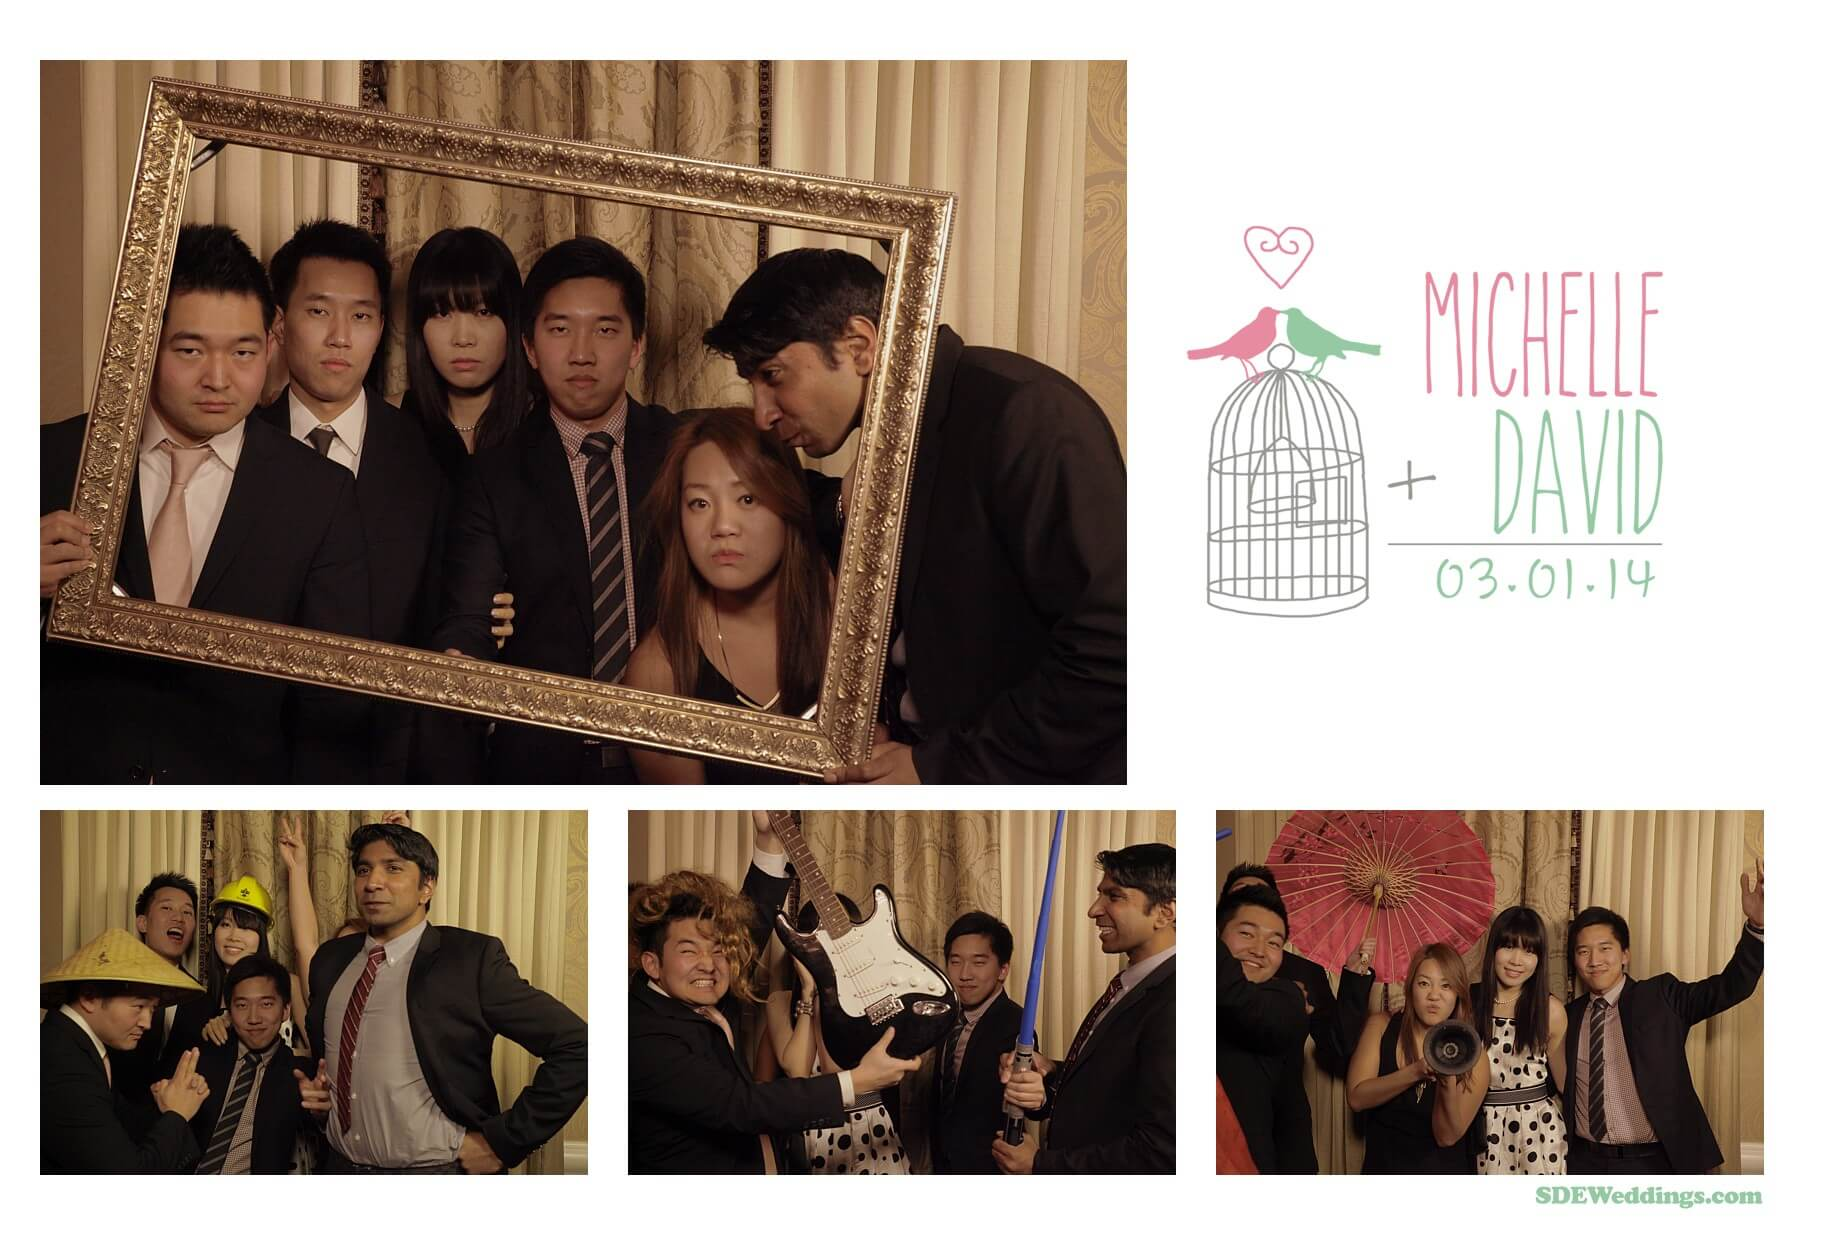 michelle david wedding photobooth photo